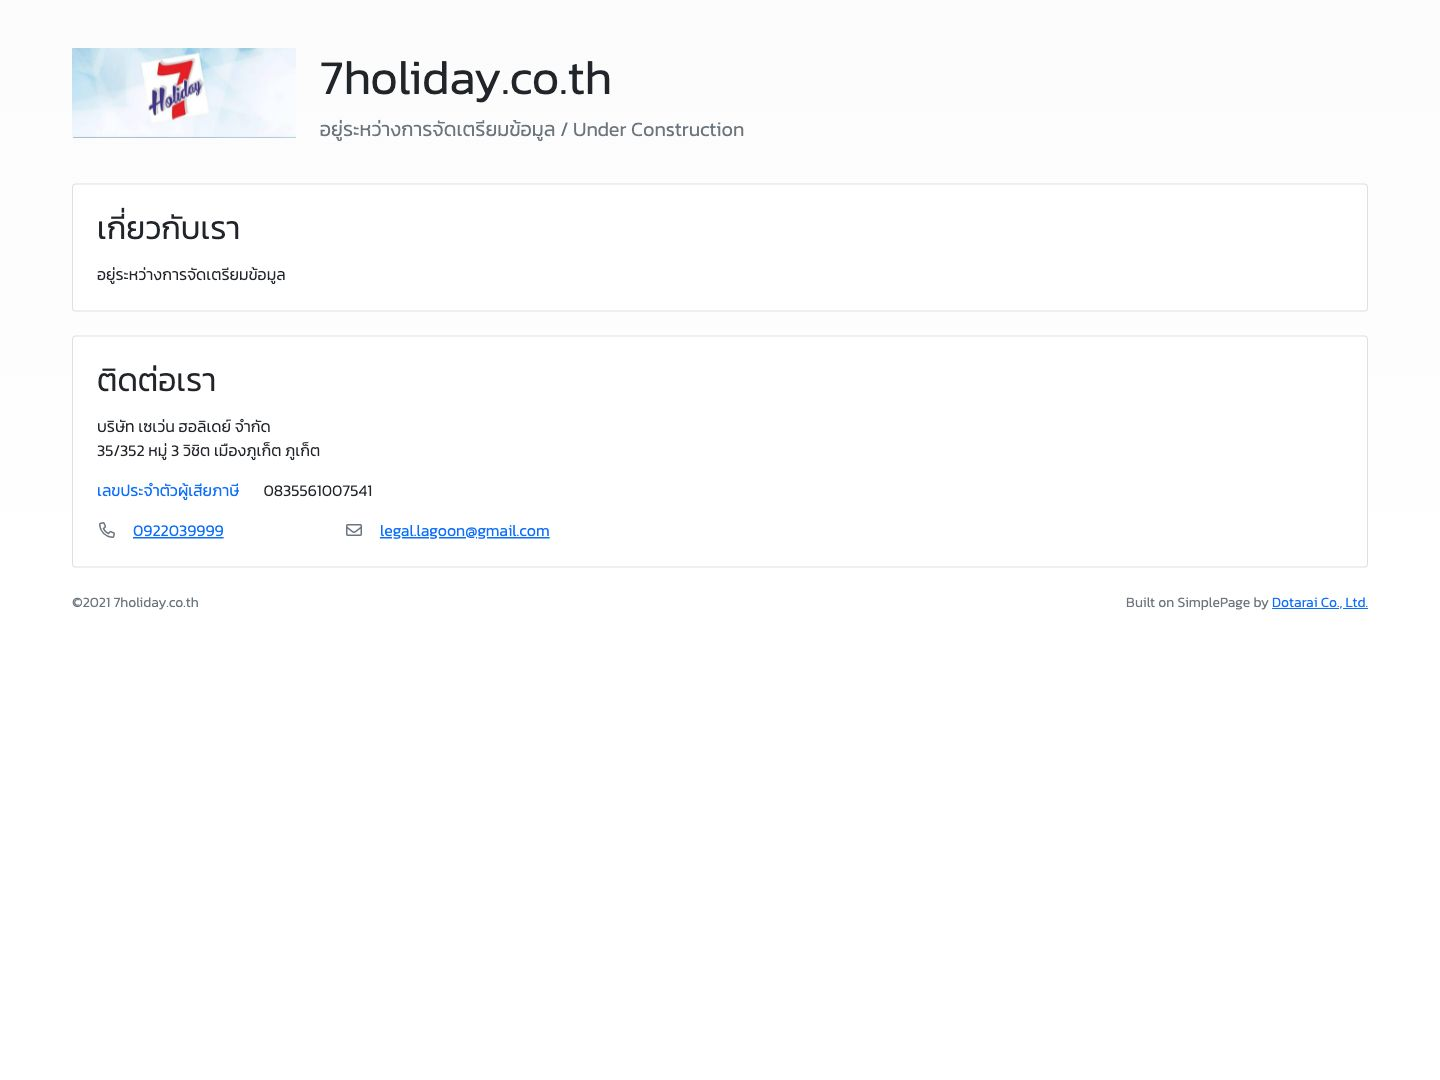 7holiday.co.th